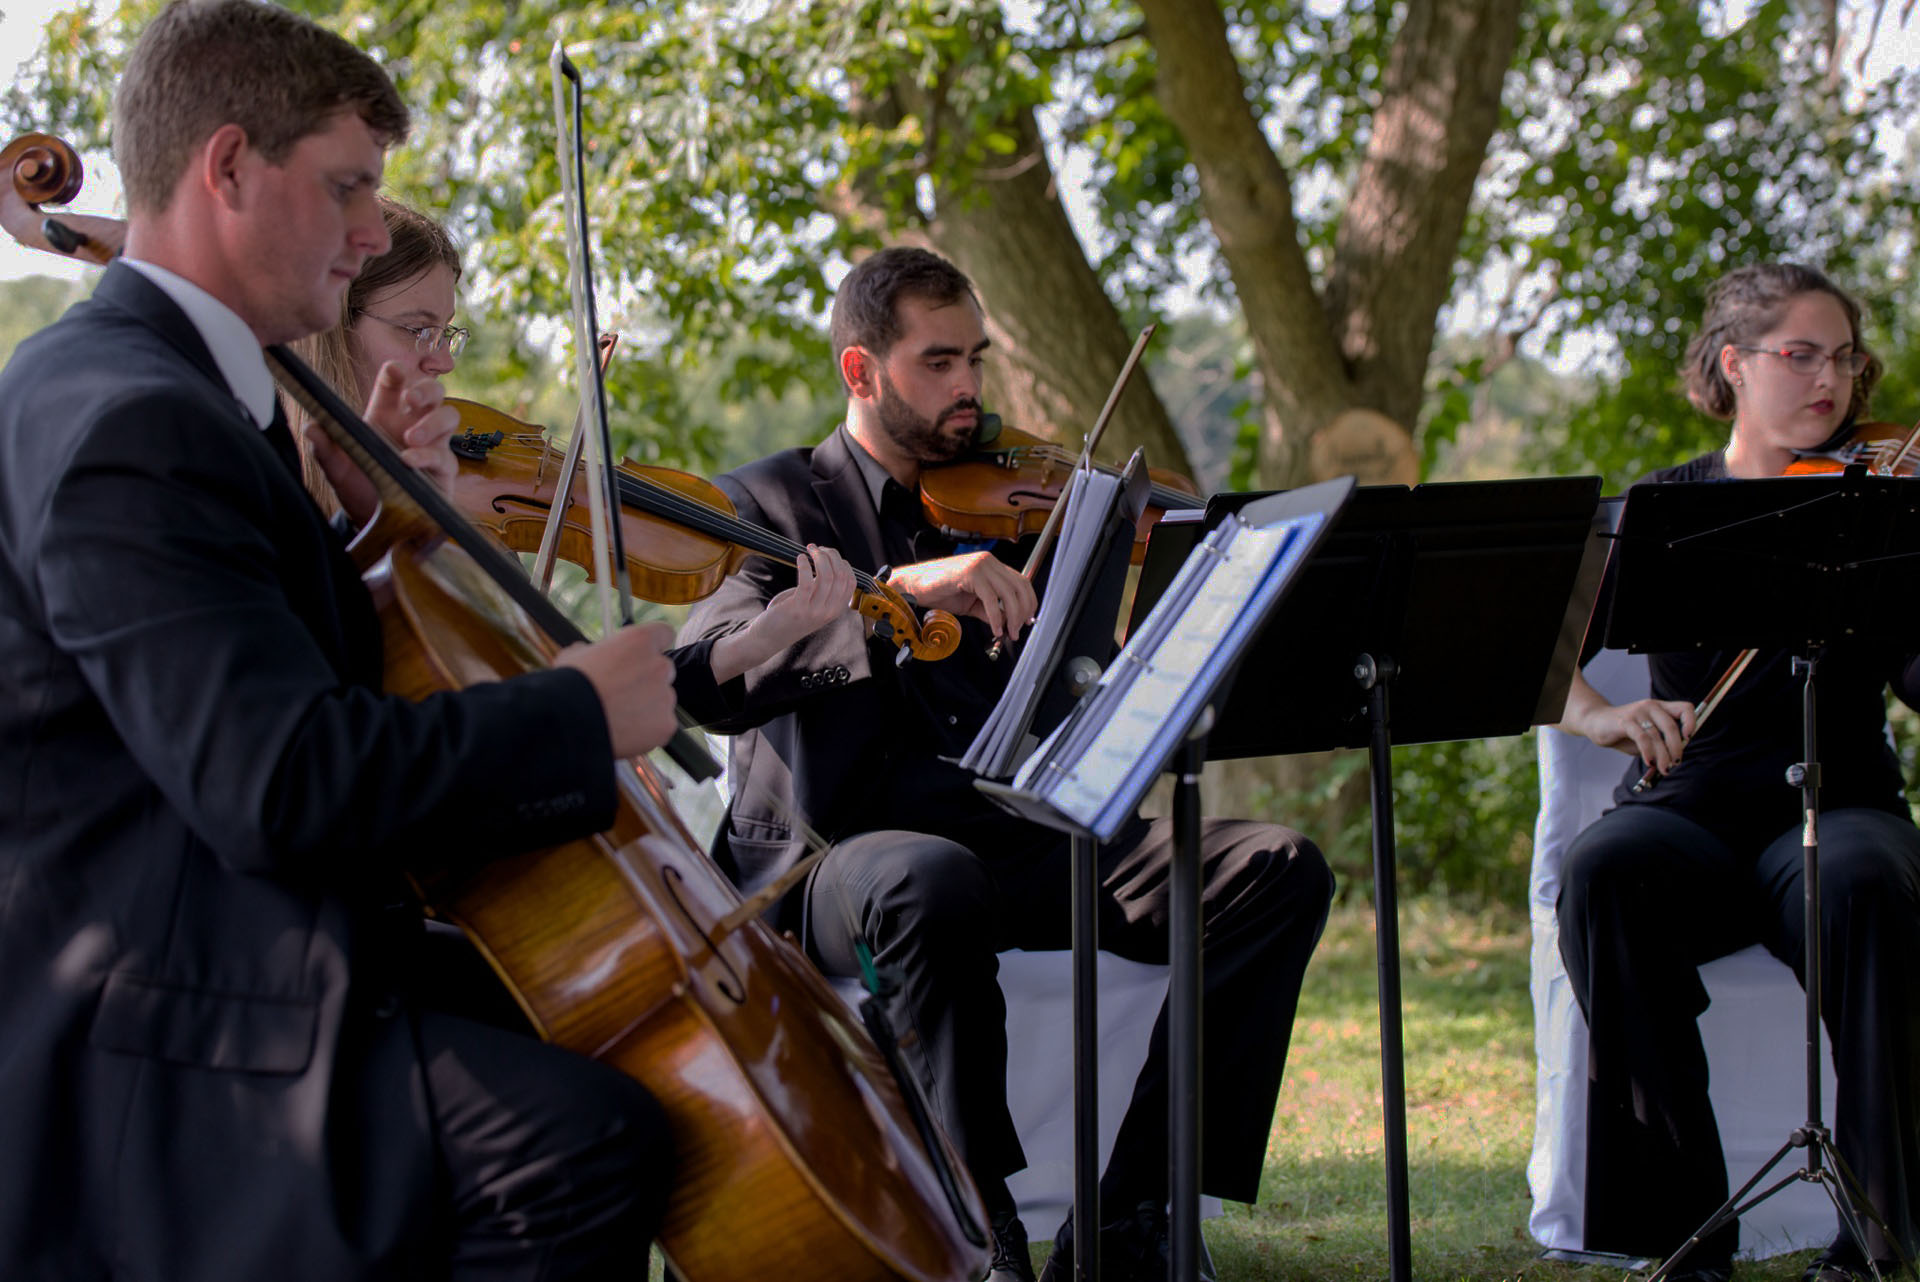 Milwaukee startup innovates the way couples plan and book music for weddings